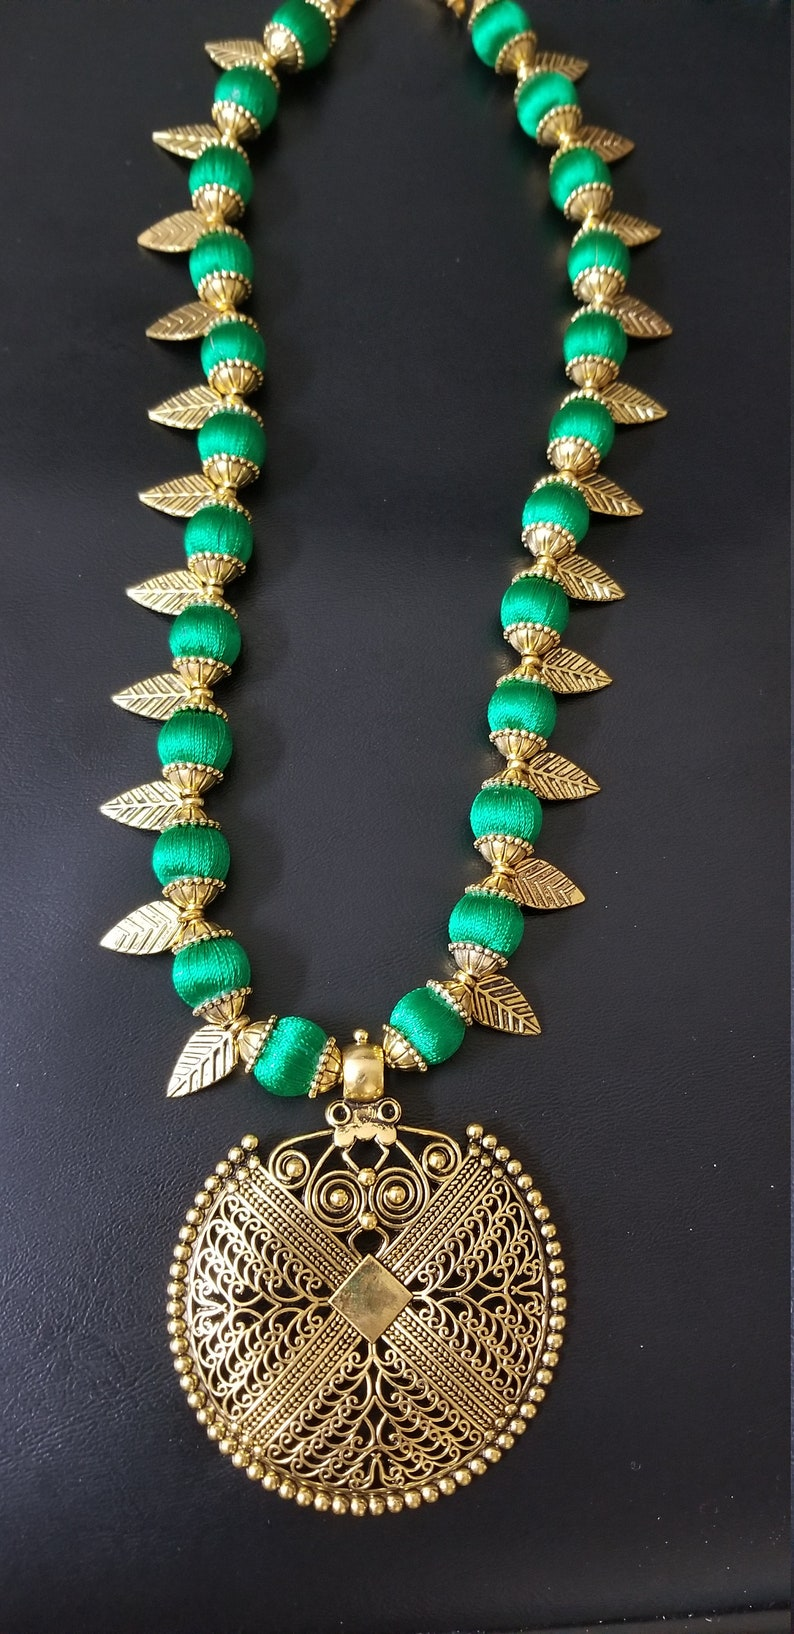 Indian Fashion Jewelry MK Fashionkart Antique finish pendent with green silk thread beads and Antique leaves